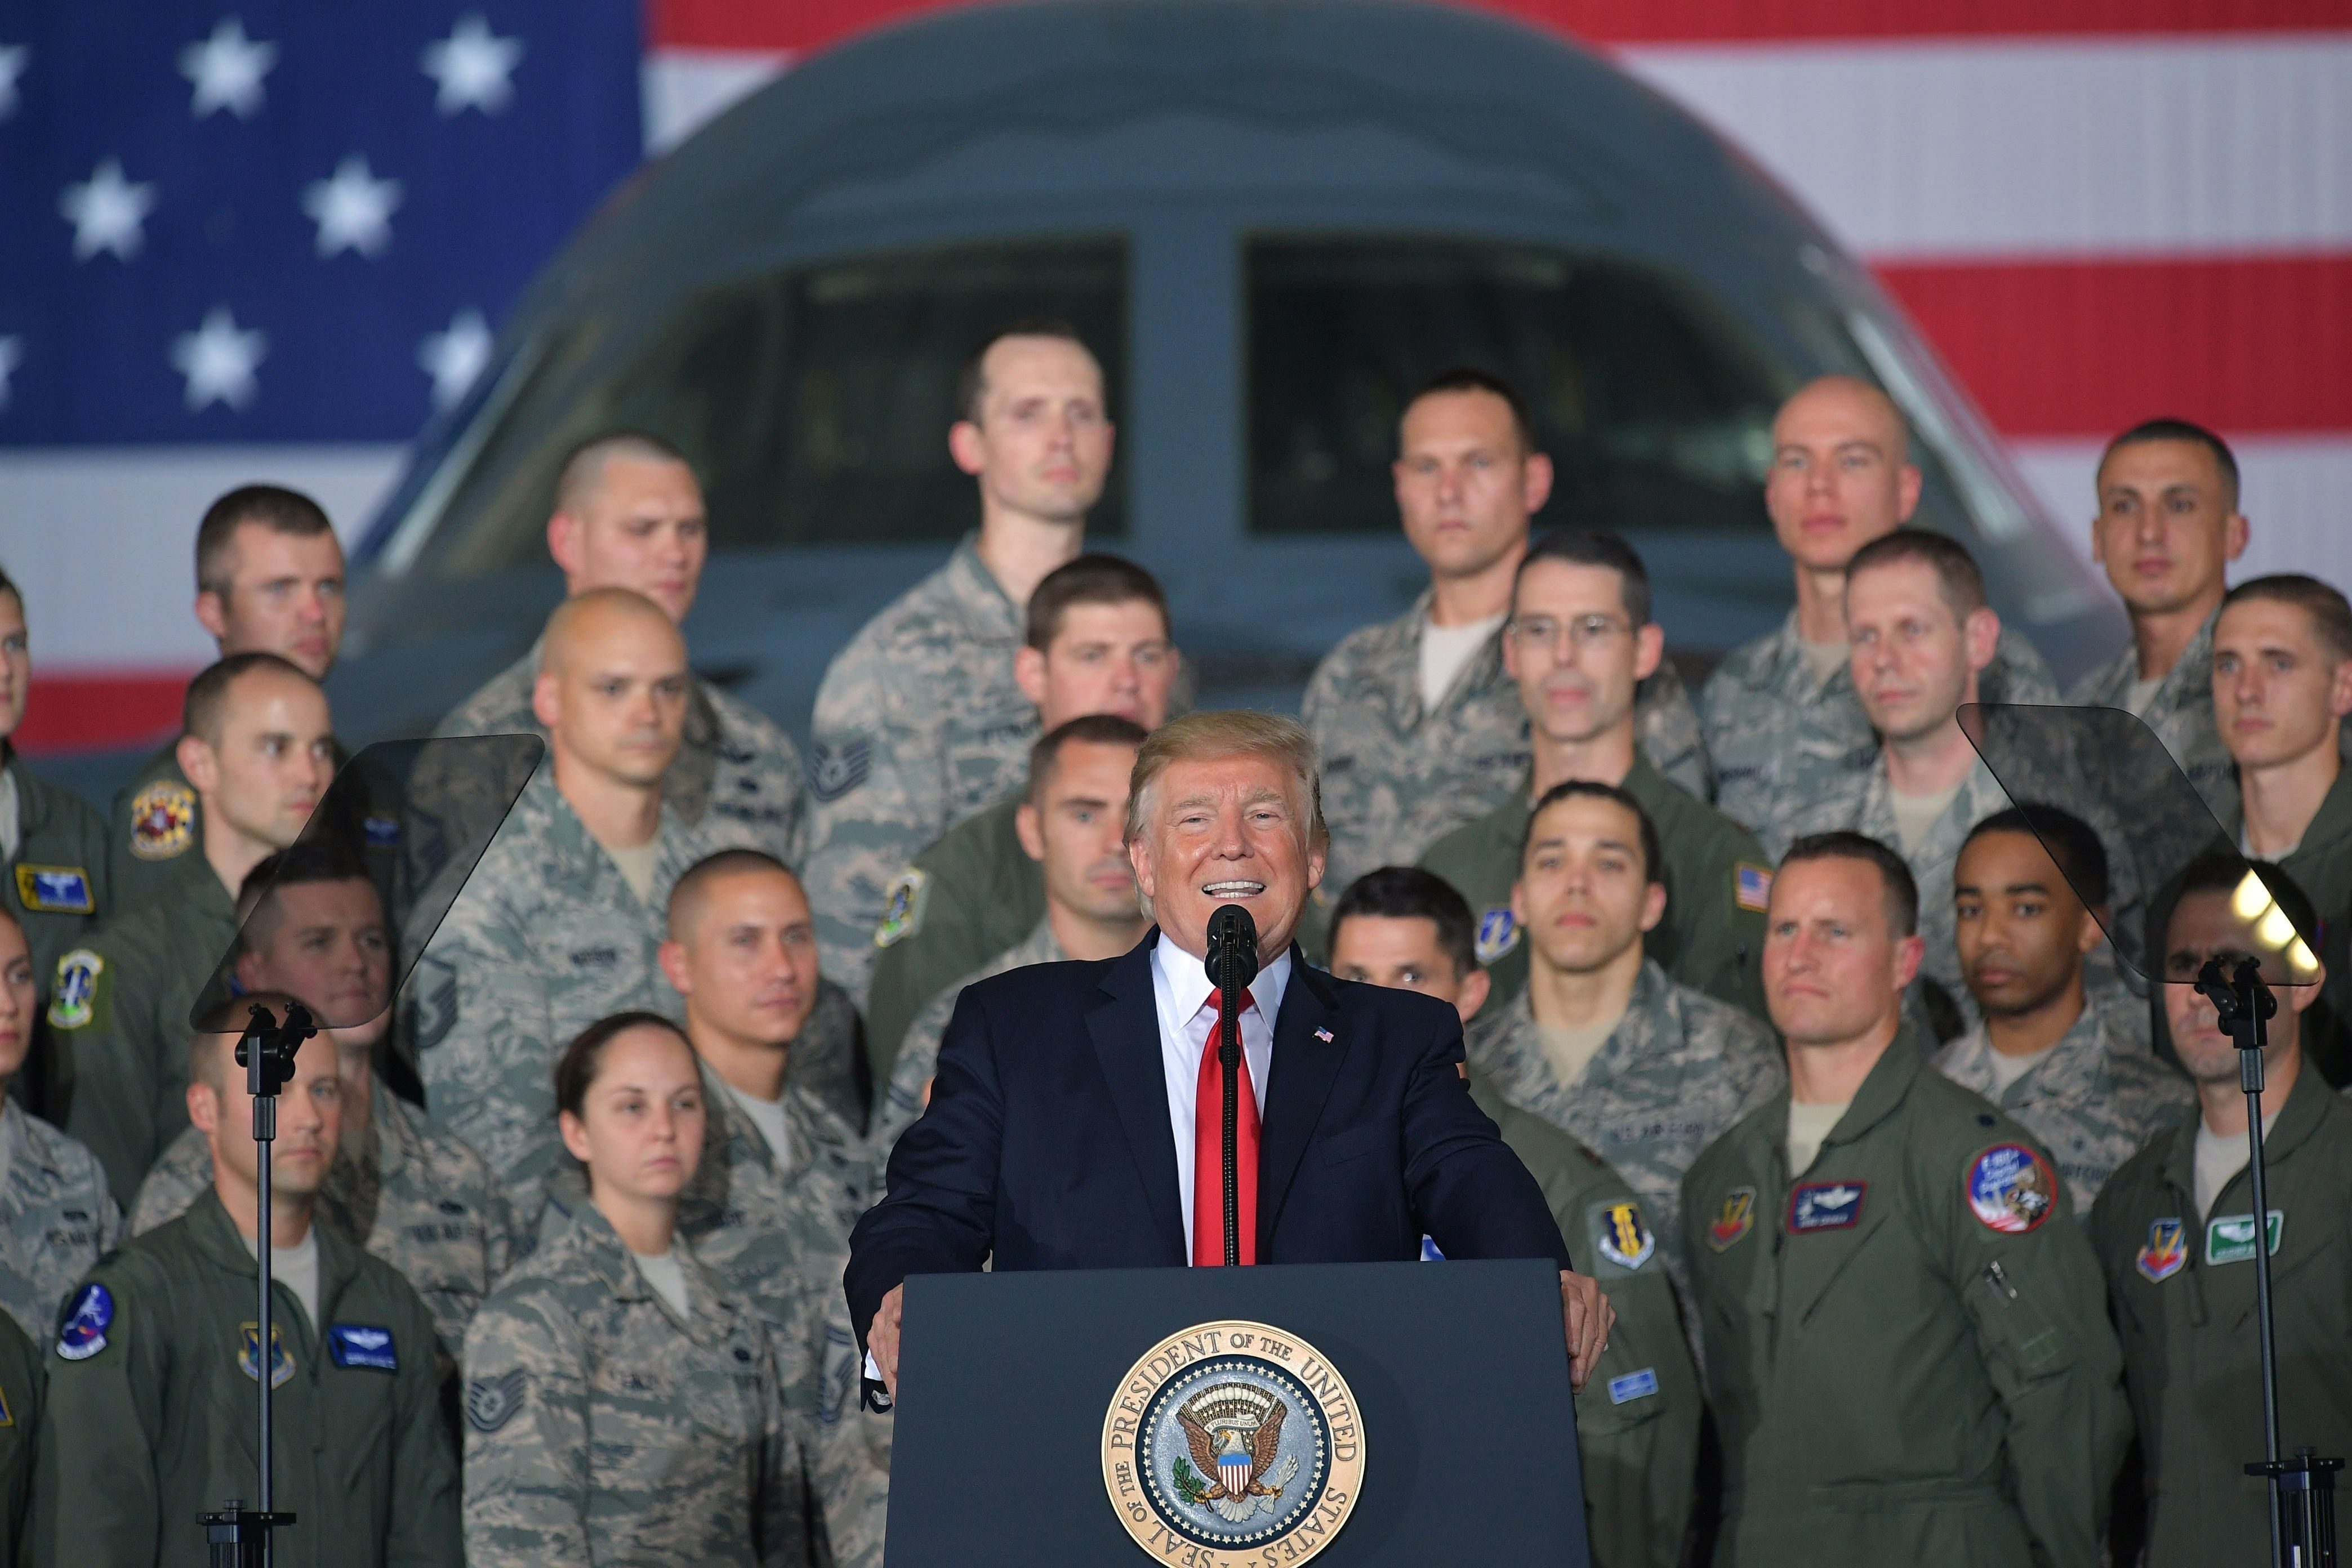 U.S. President Donald Trump speaks to members of the military at Joint Andrews Airforce base, Maryland on September 15, 2017.